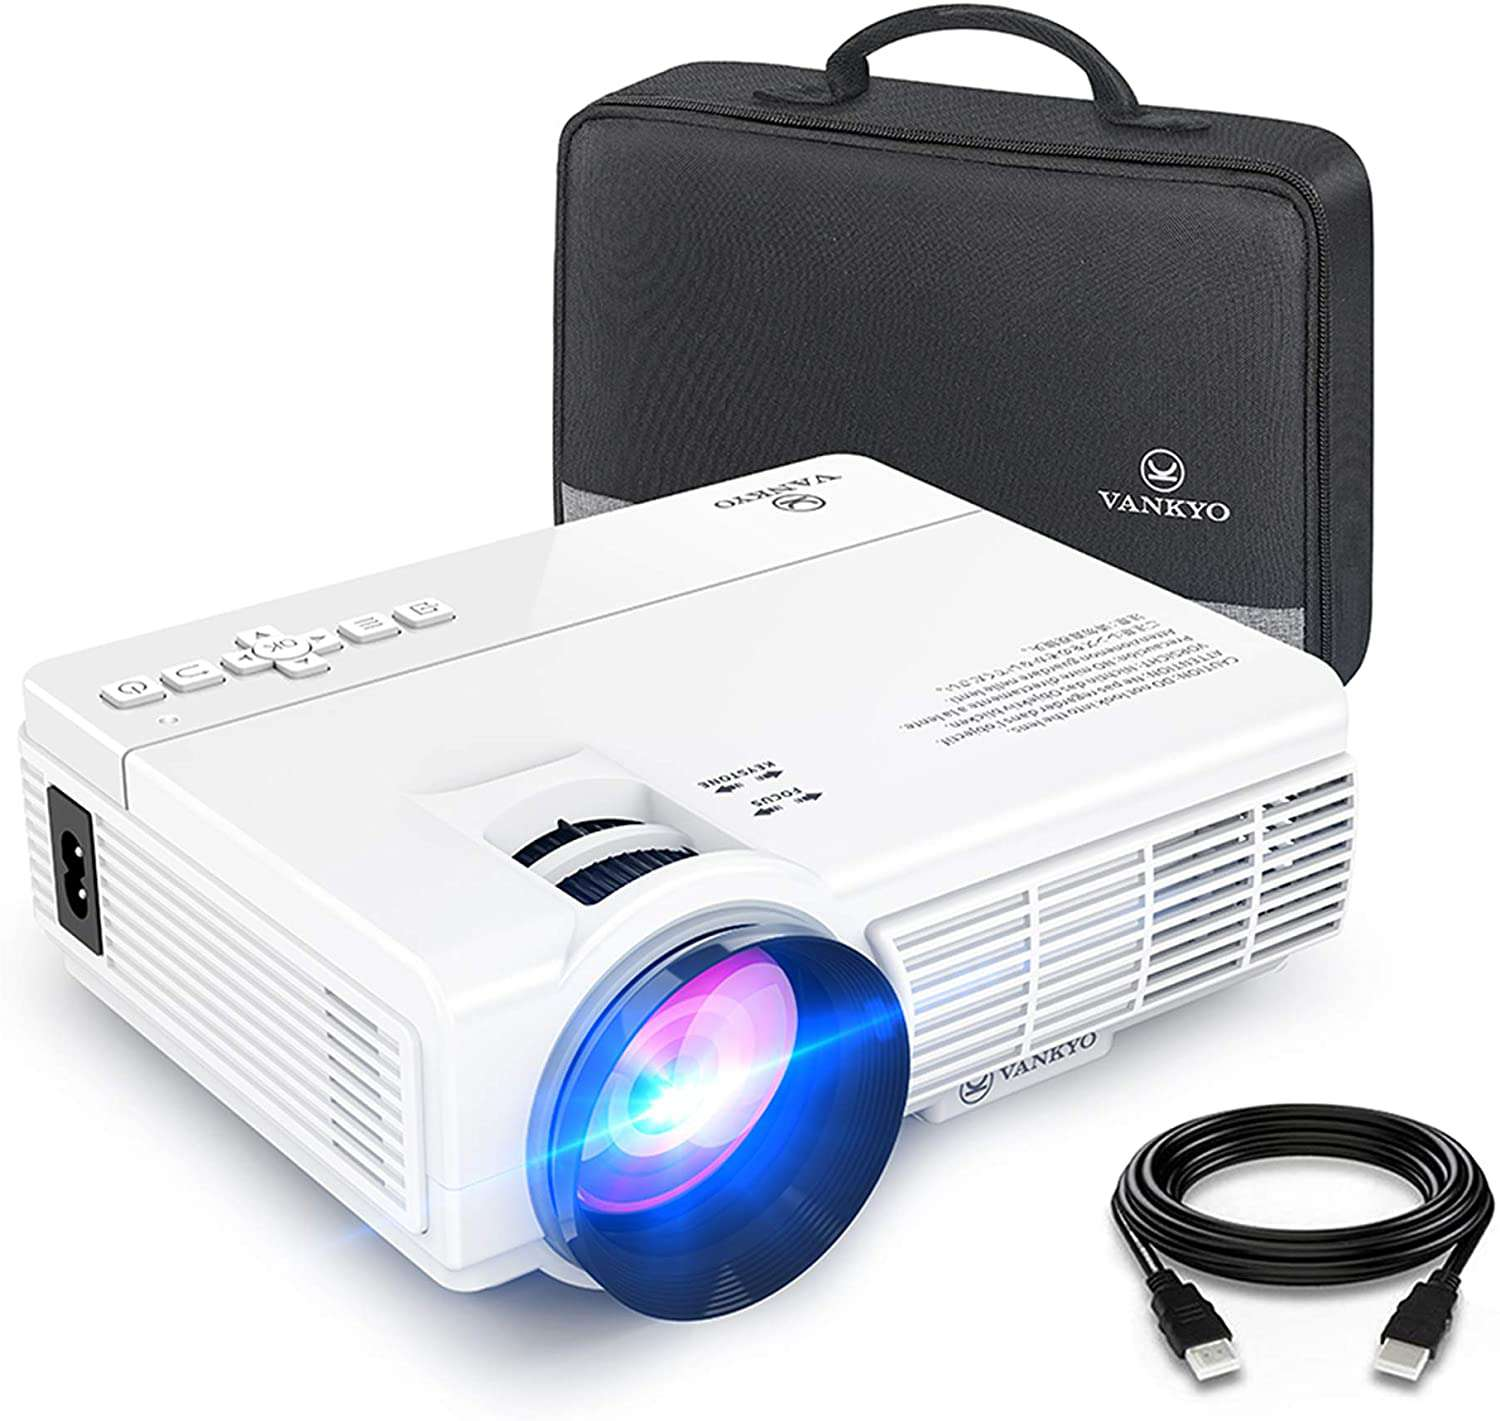 The Vankyo projector is a very portable projector.